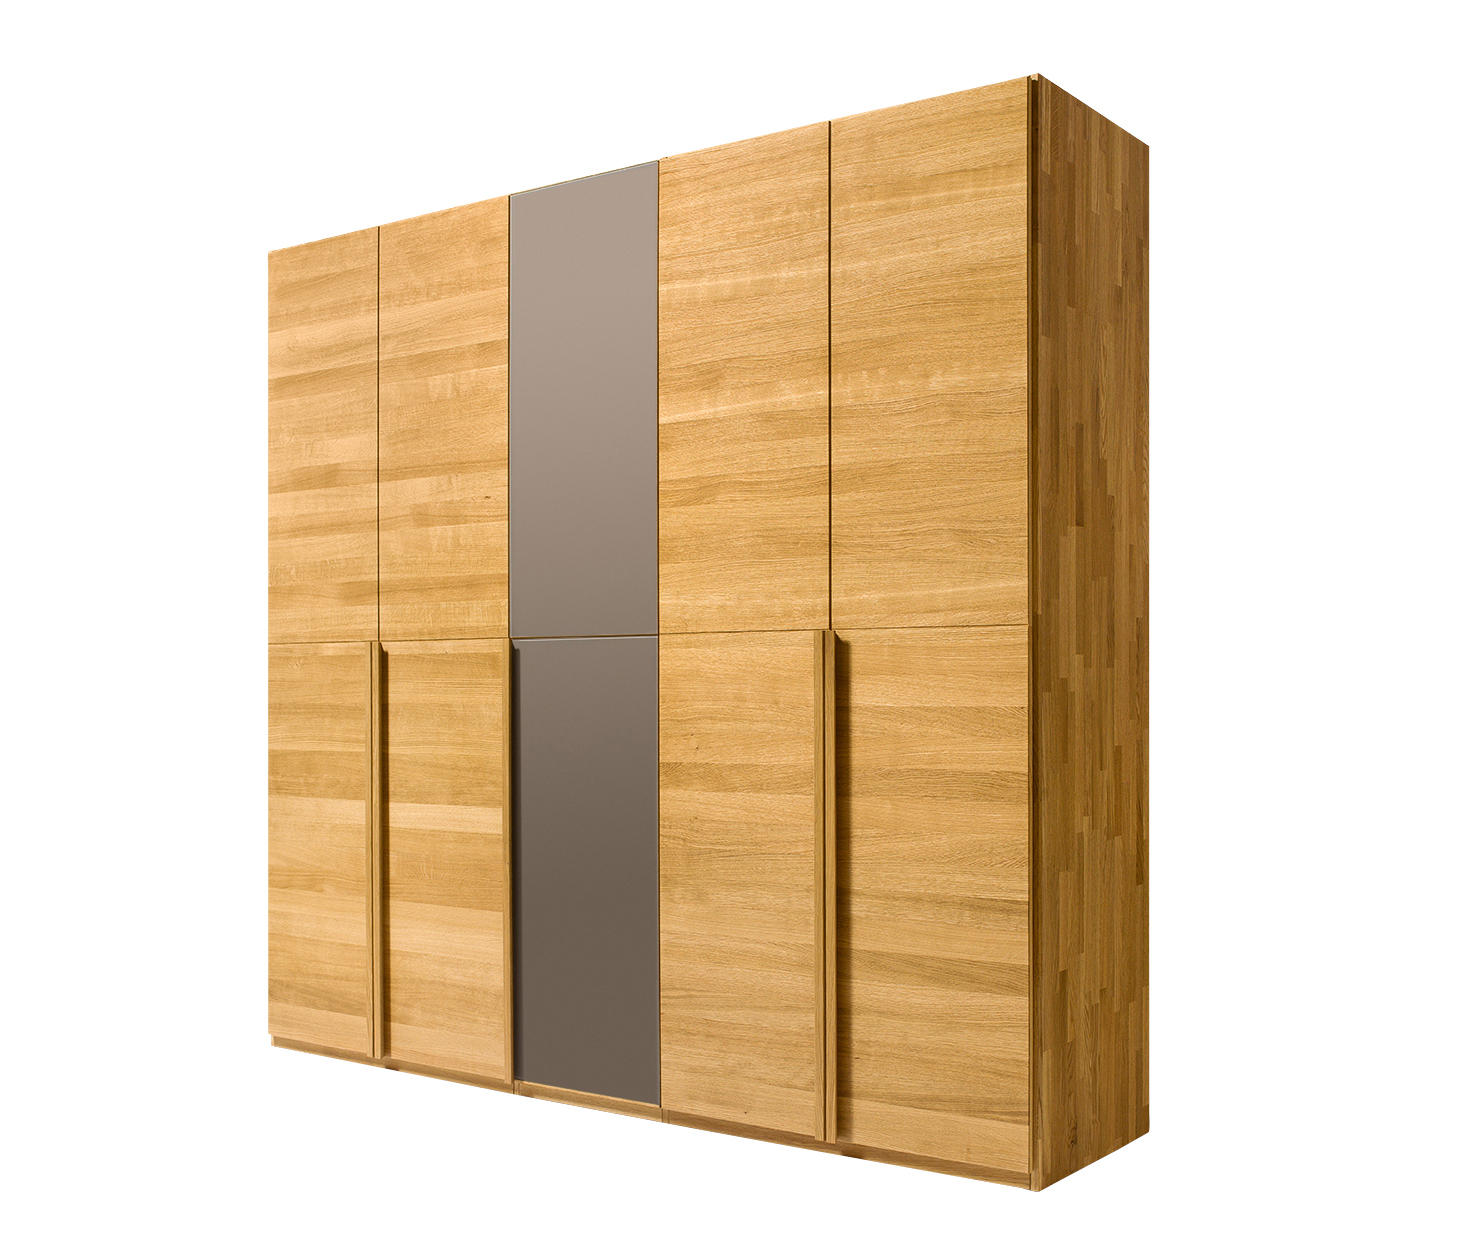 soft wardrobe system storage systems from team 7 architonic. Black Bedroom Furniture Sets. Home Design Ideas